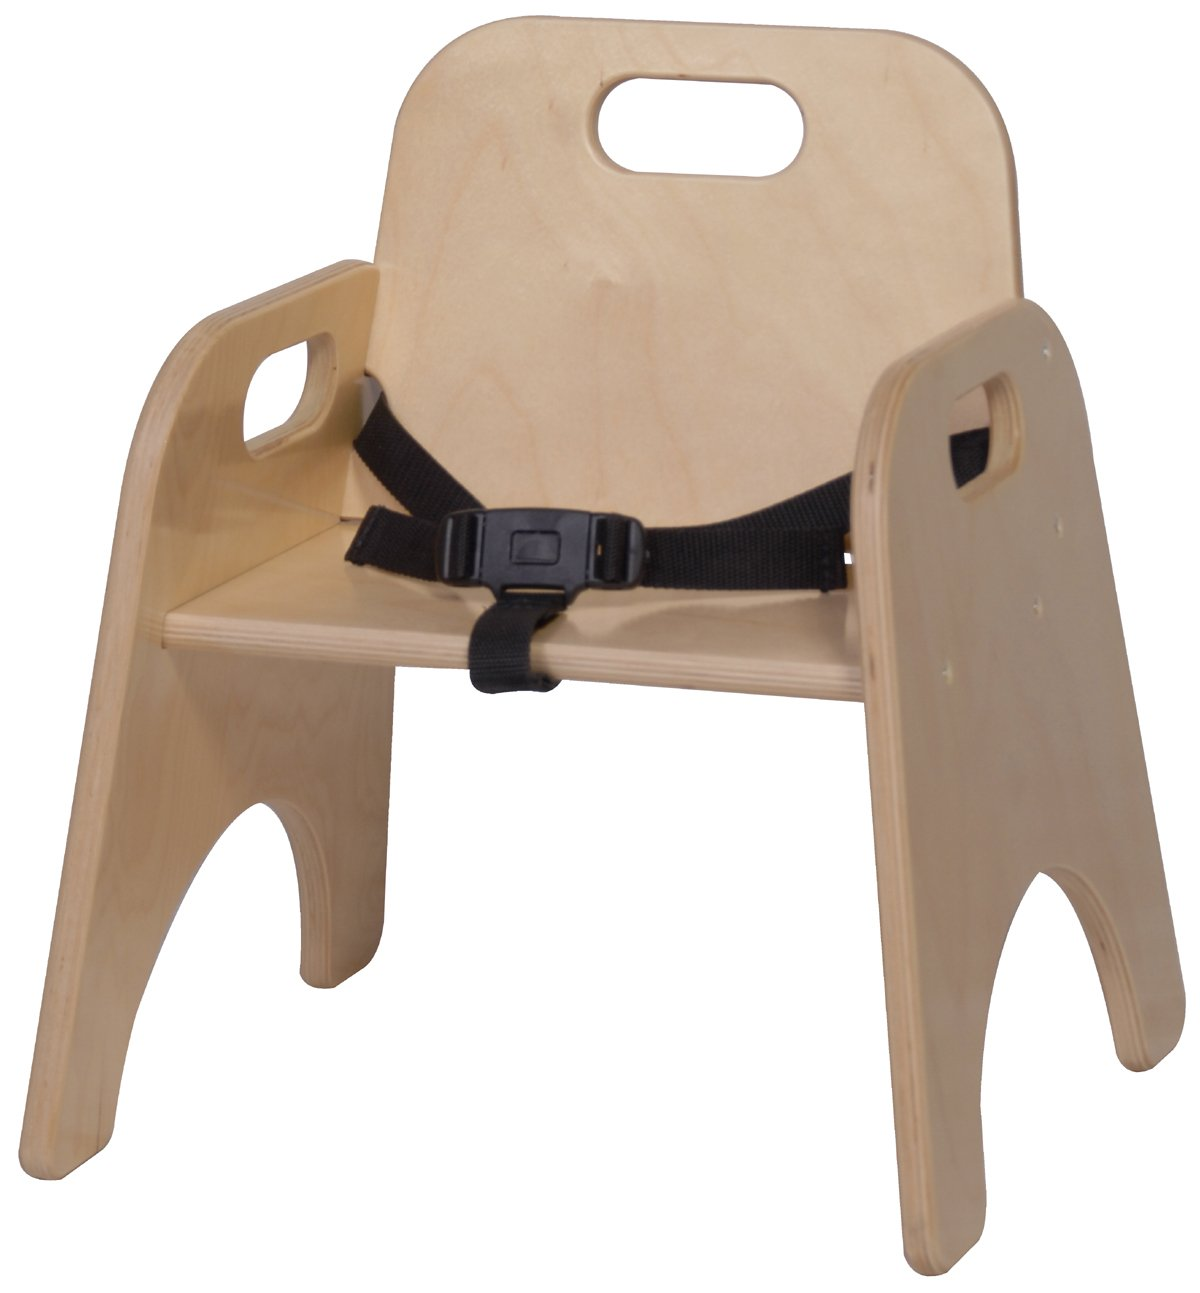 Steffy Wood Products 9-Inch Toddler Chair with Strap by Steffy Wood Products, Inc.